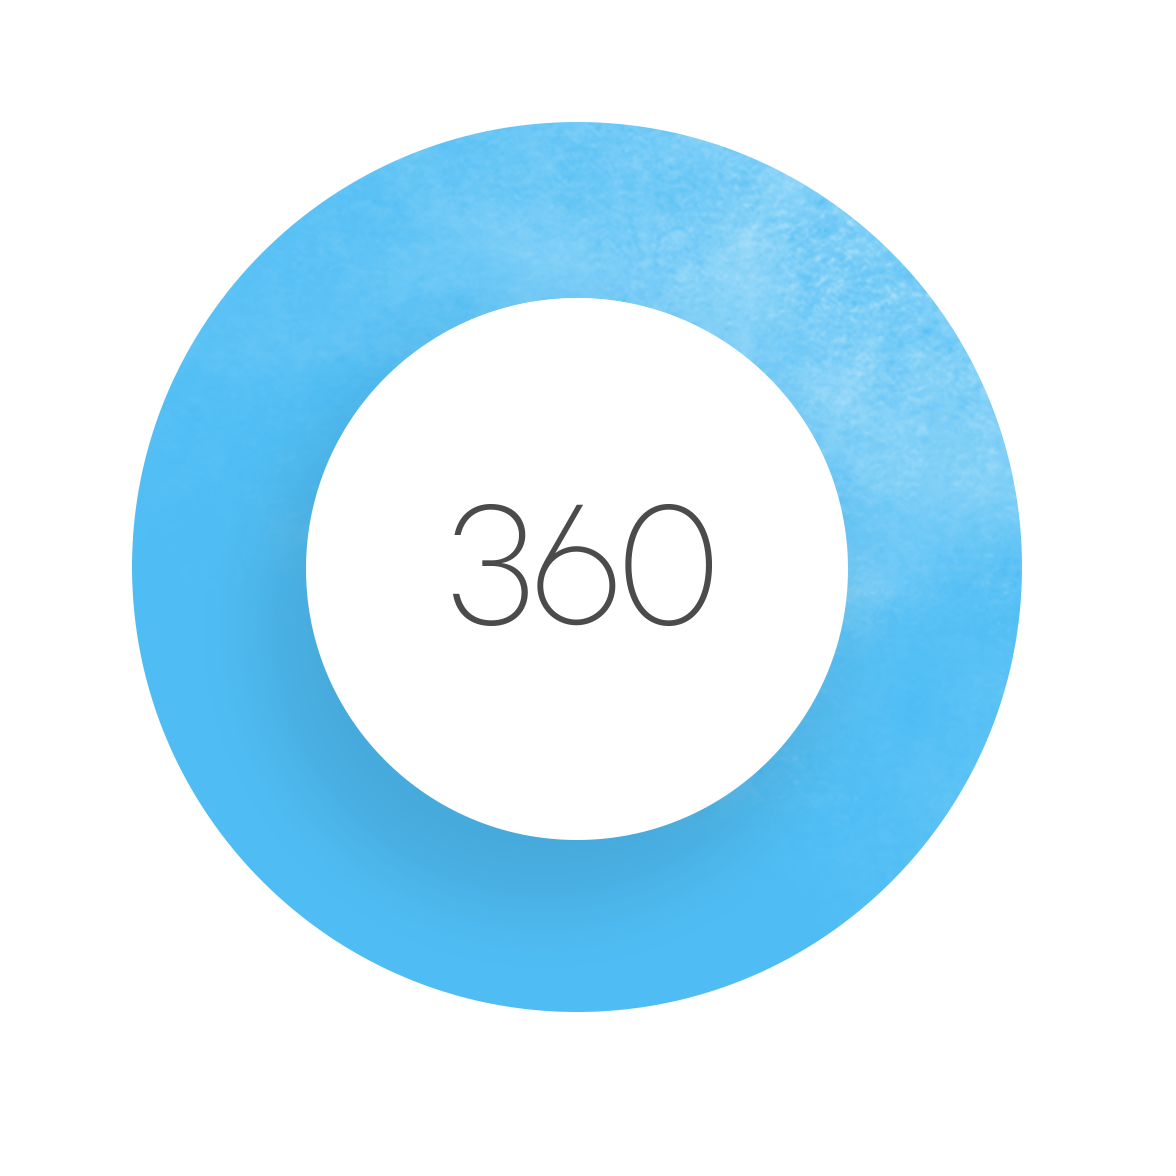 Technical Support for Articulate 360